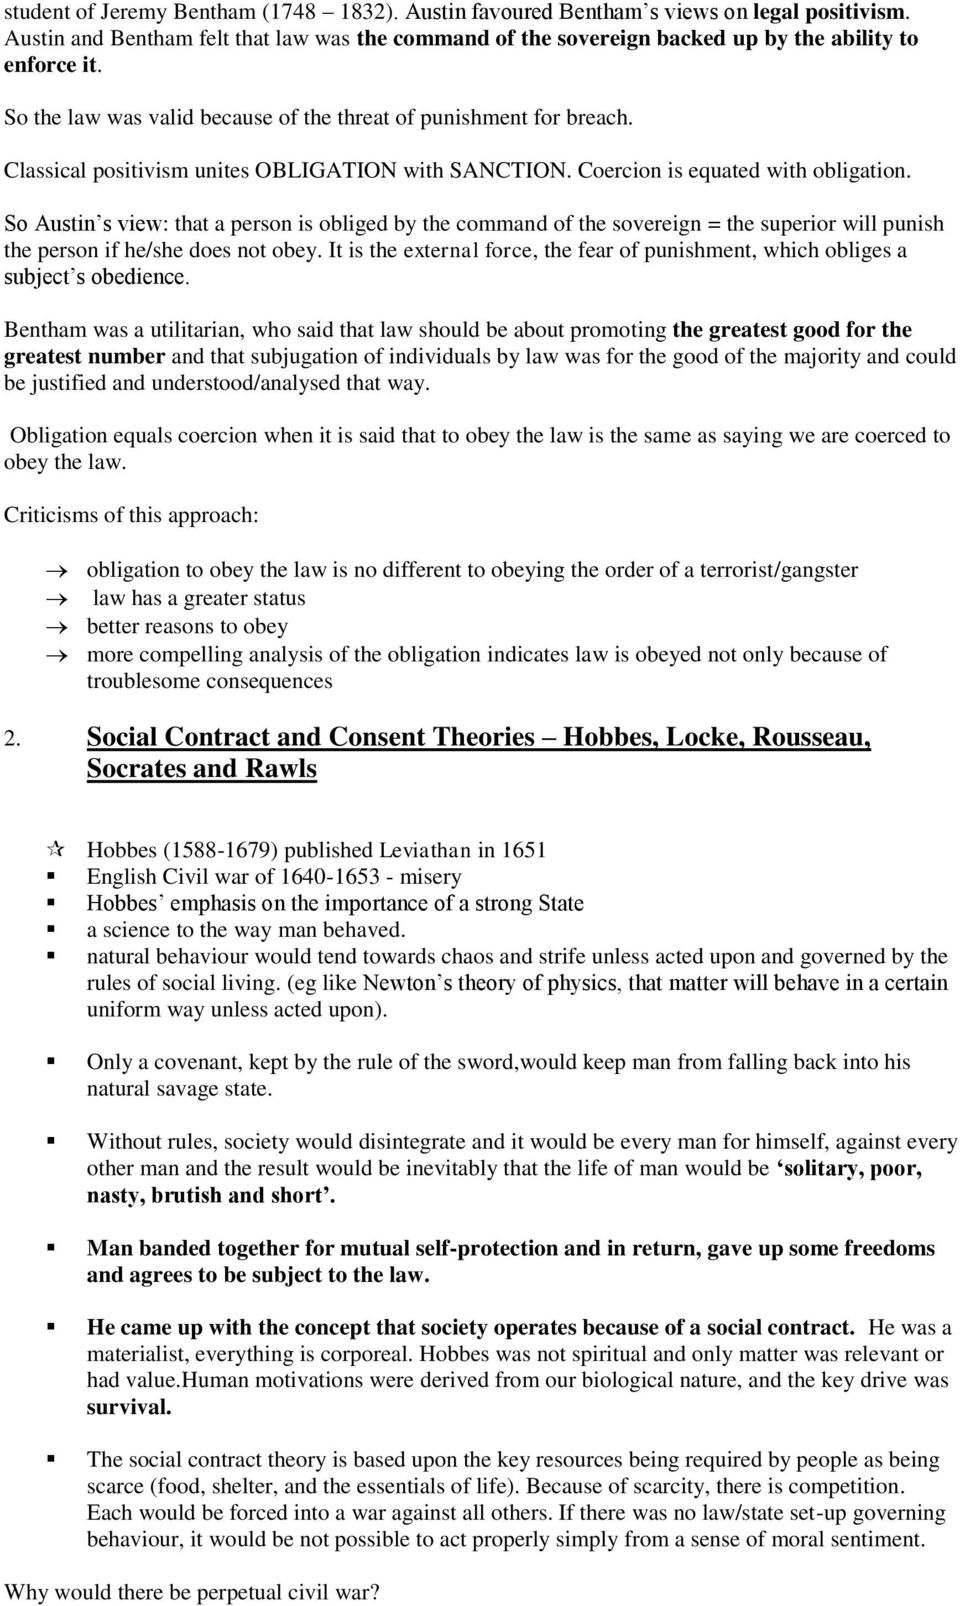 key concepts of utilitarianism